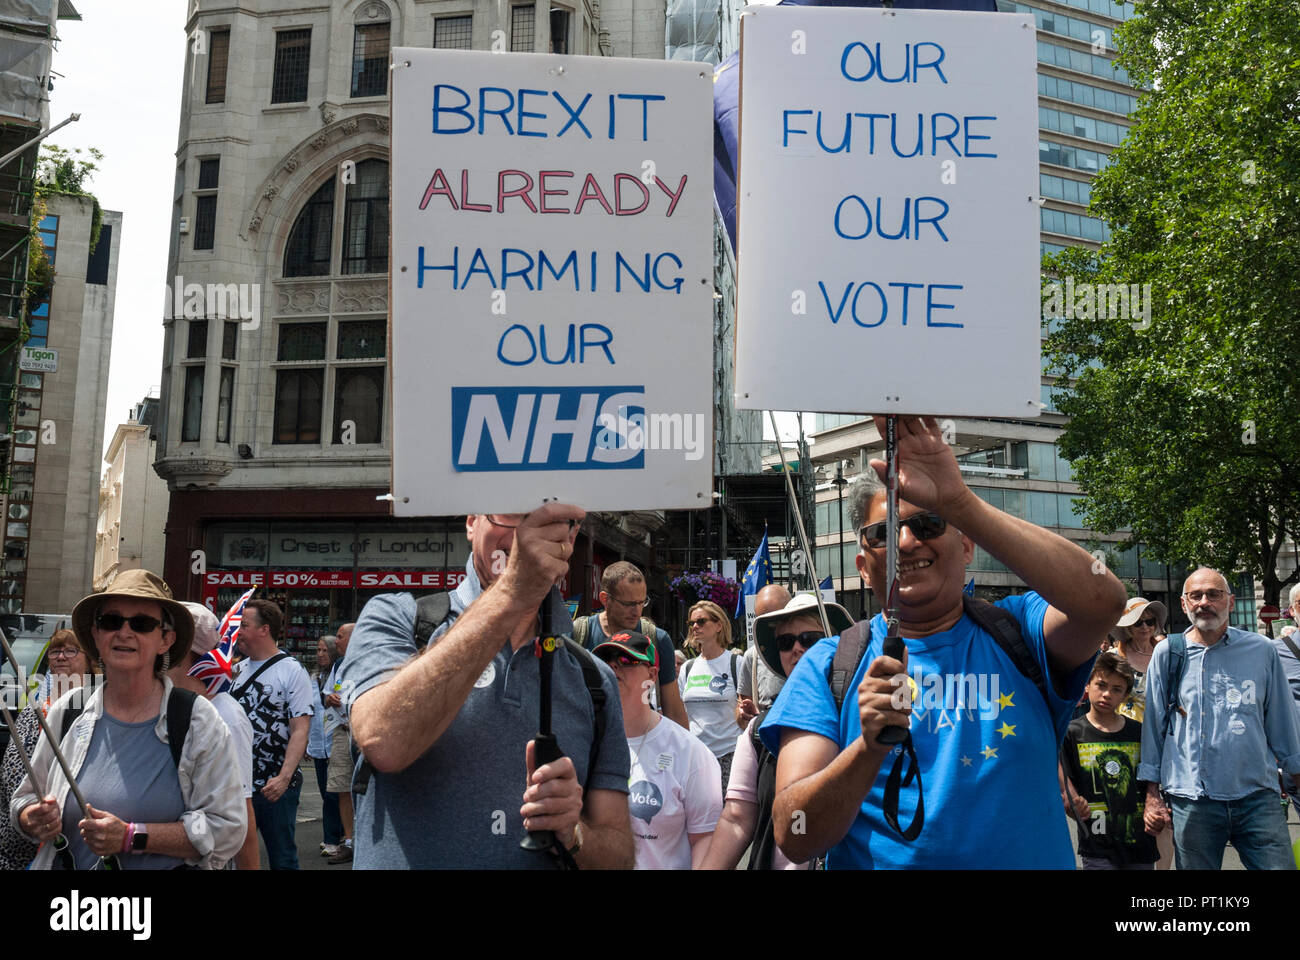 Two smiling men on Anti-Brexit rally in support of second referendum, carrying placards 'Brexit already harming our NHS' and 'Our future our vote' - Stock Image